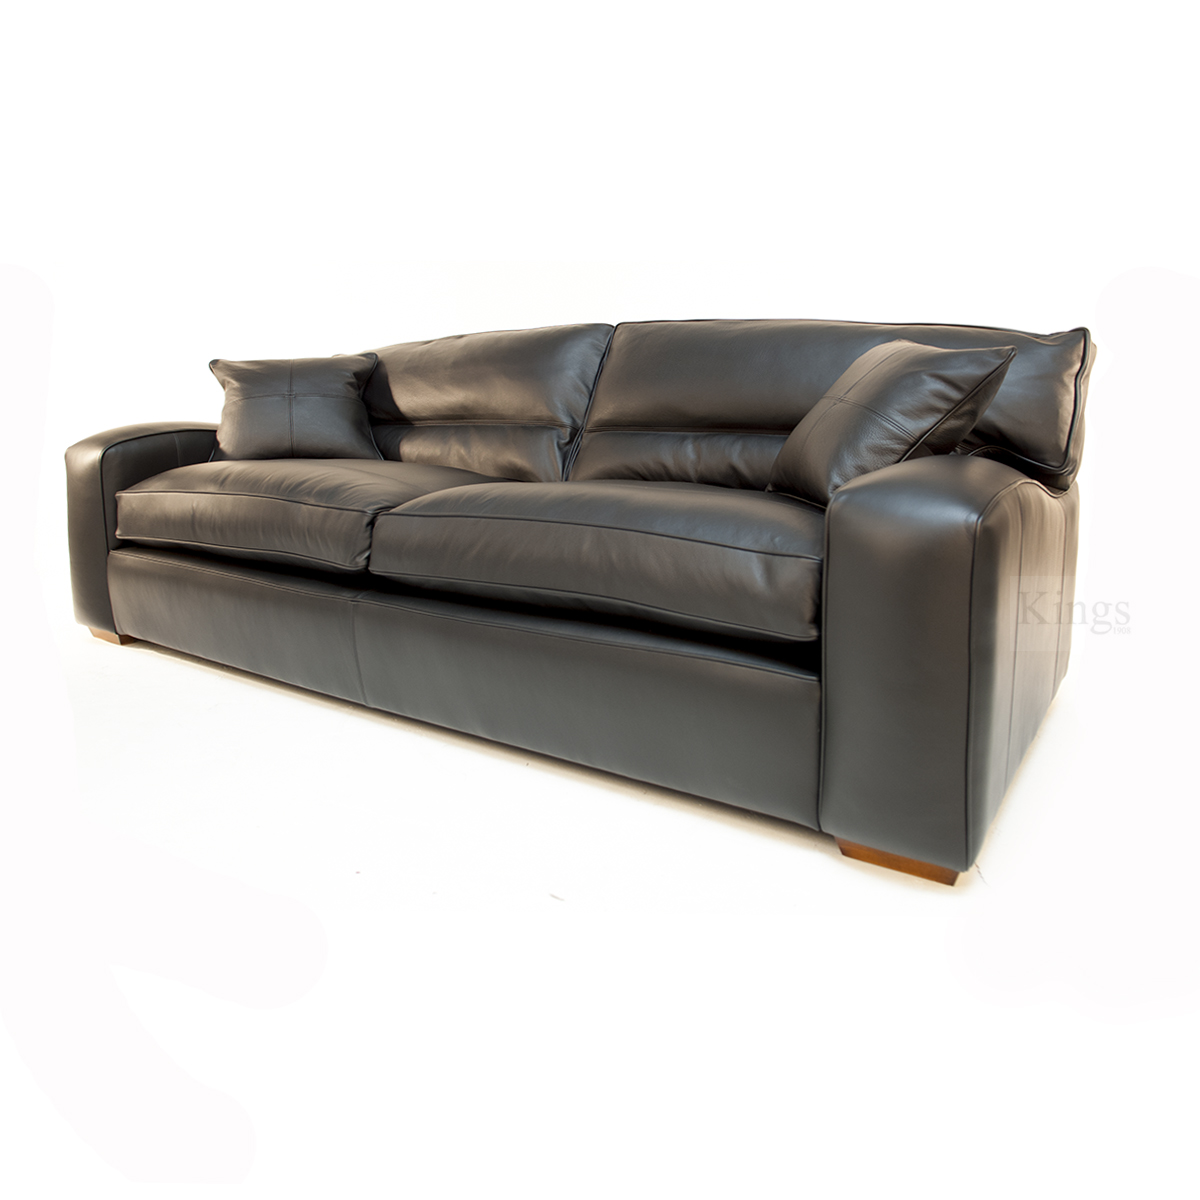 Duresta Upholstery Grand Panther Sofa In Nero Black